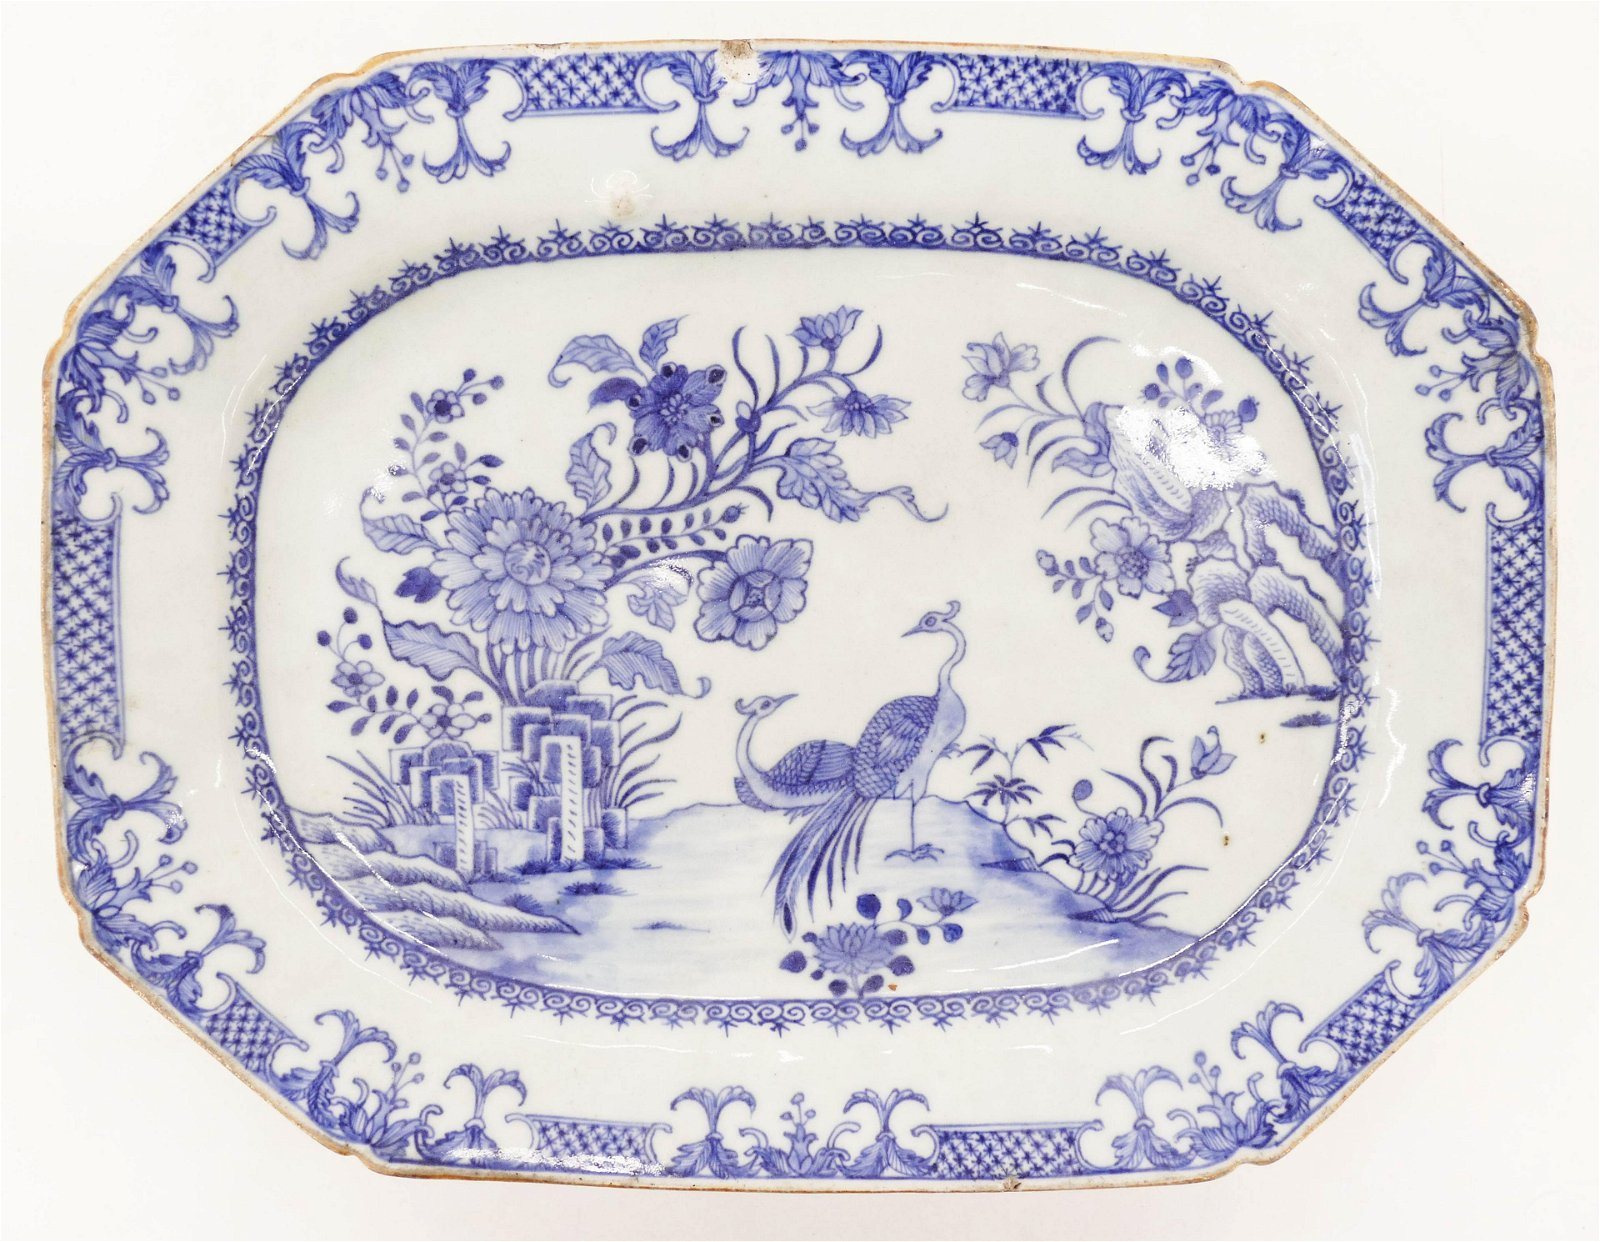 Chinese 18th Cent. Peacock Export Porcelain Platter